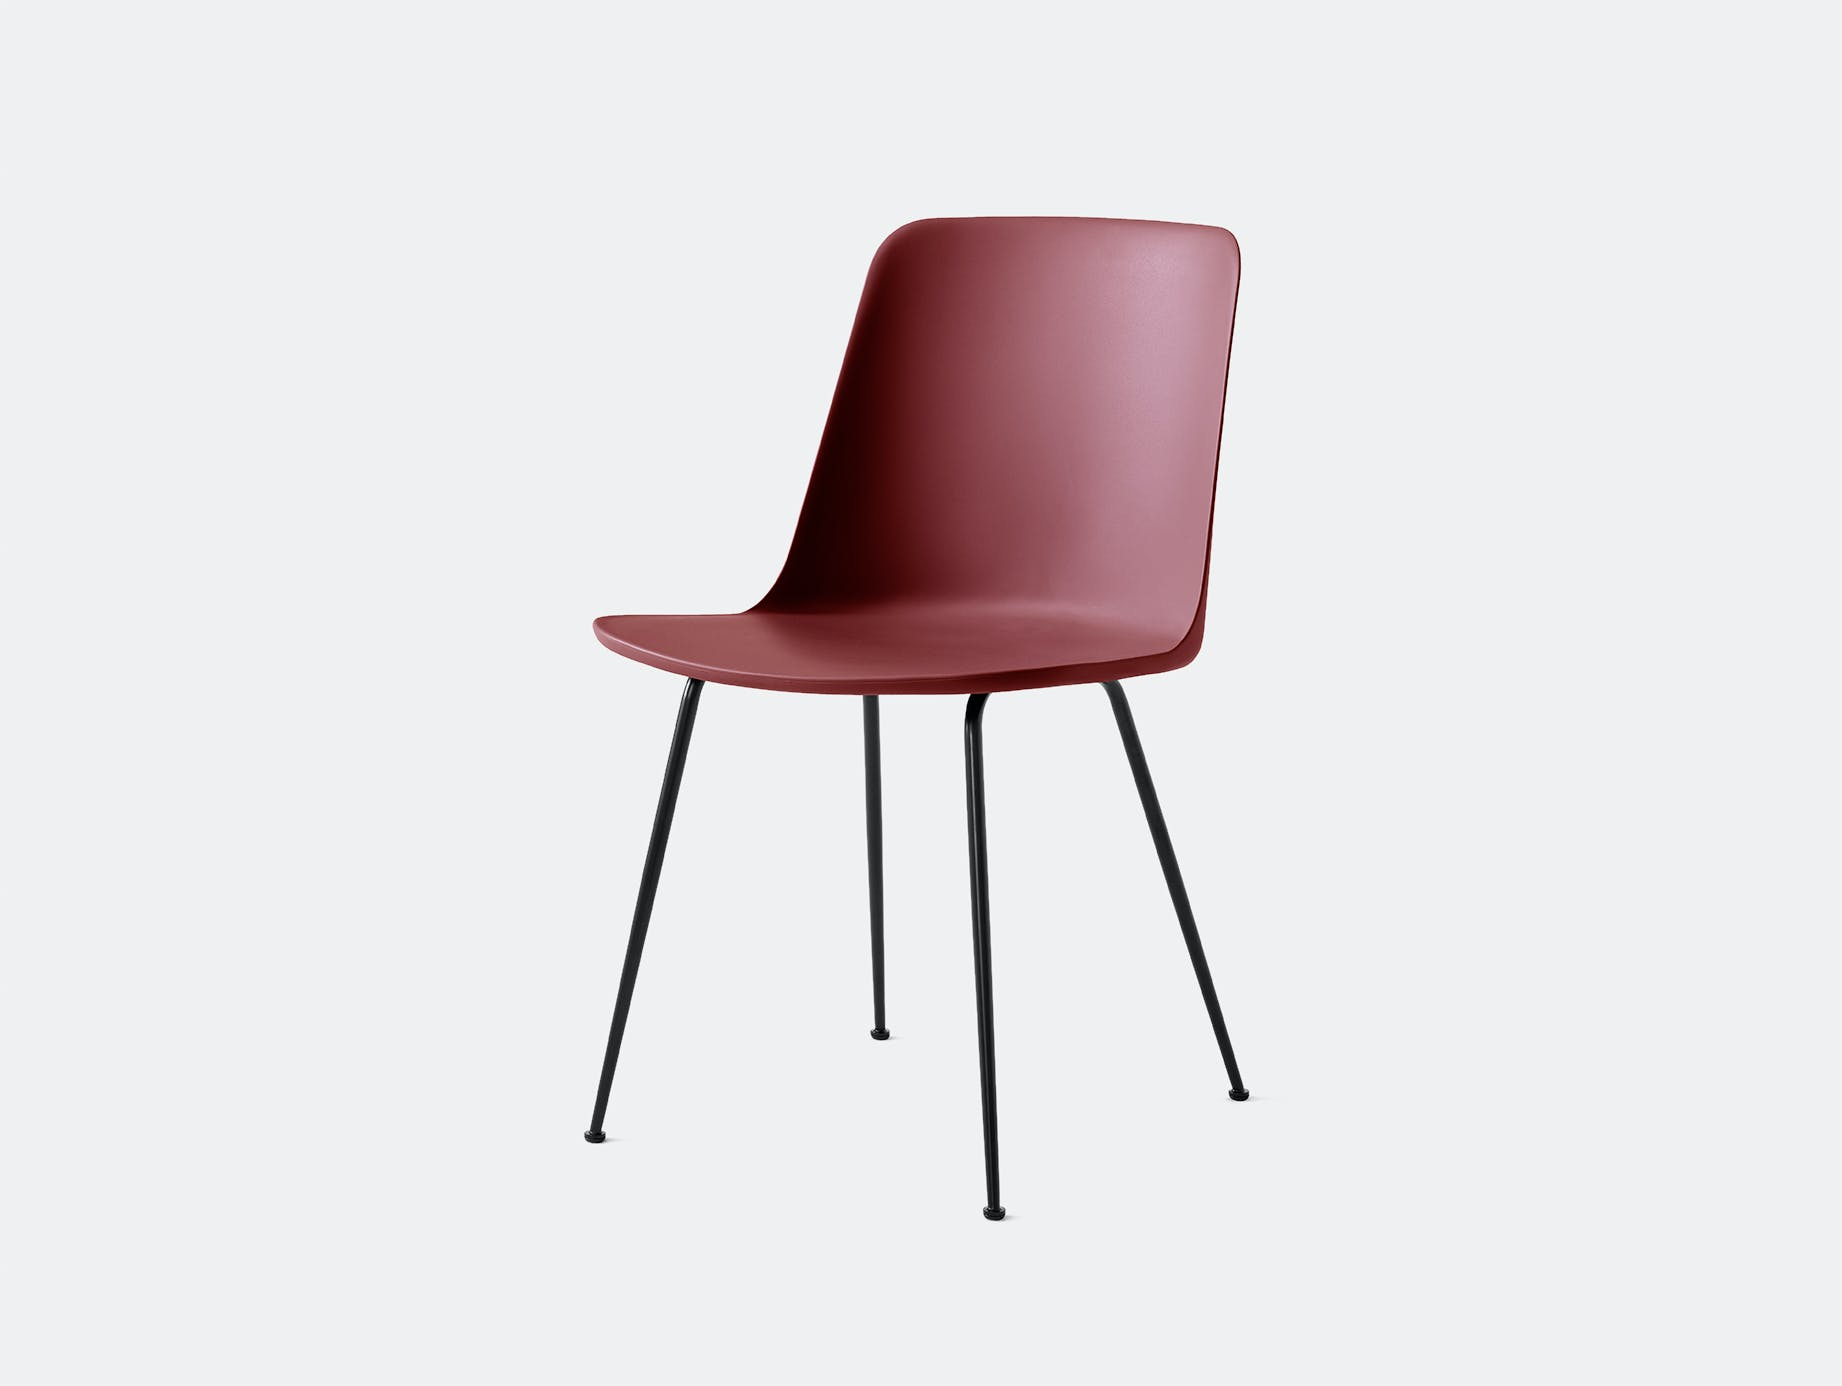 Andtradition rely chair four leg blk redbrown